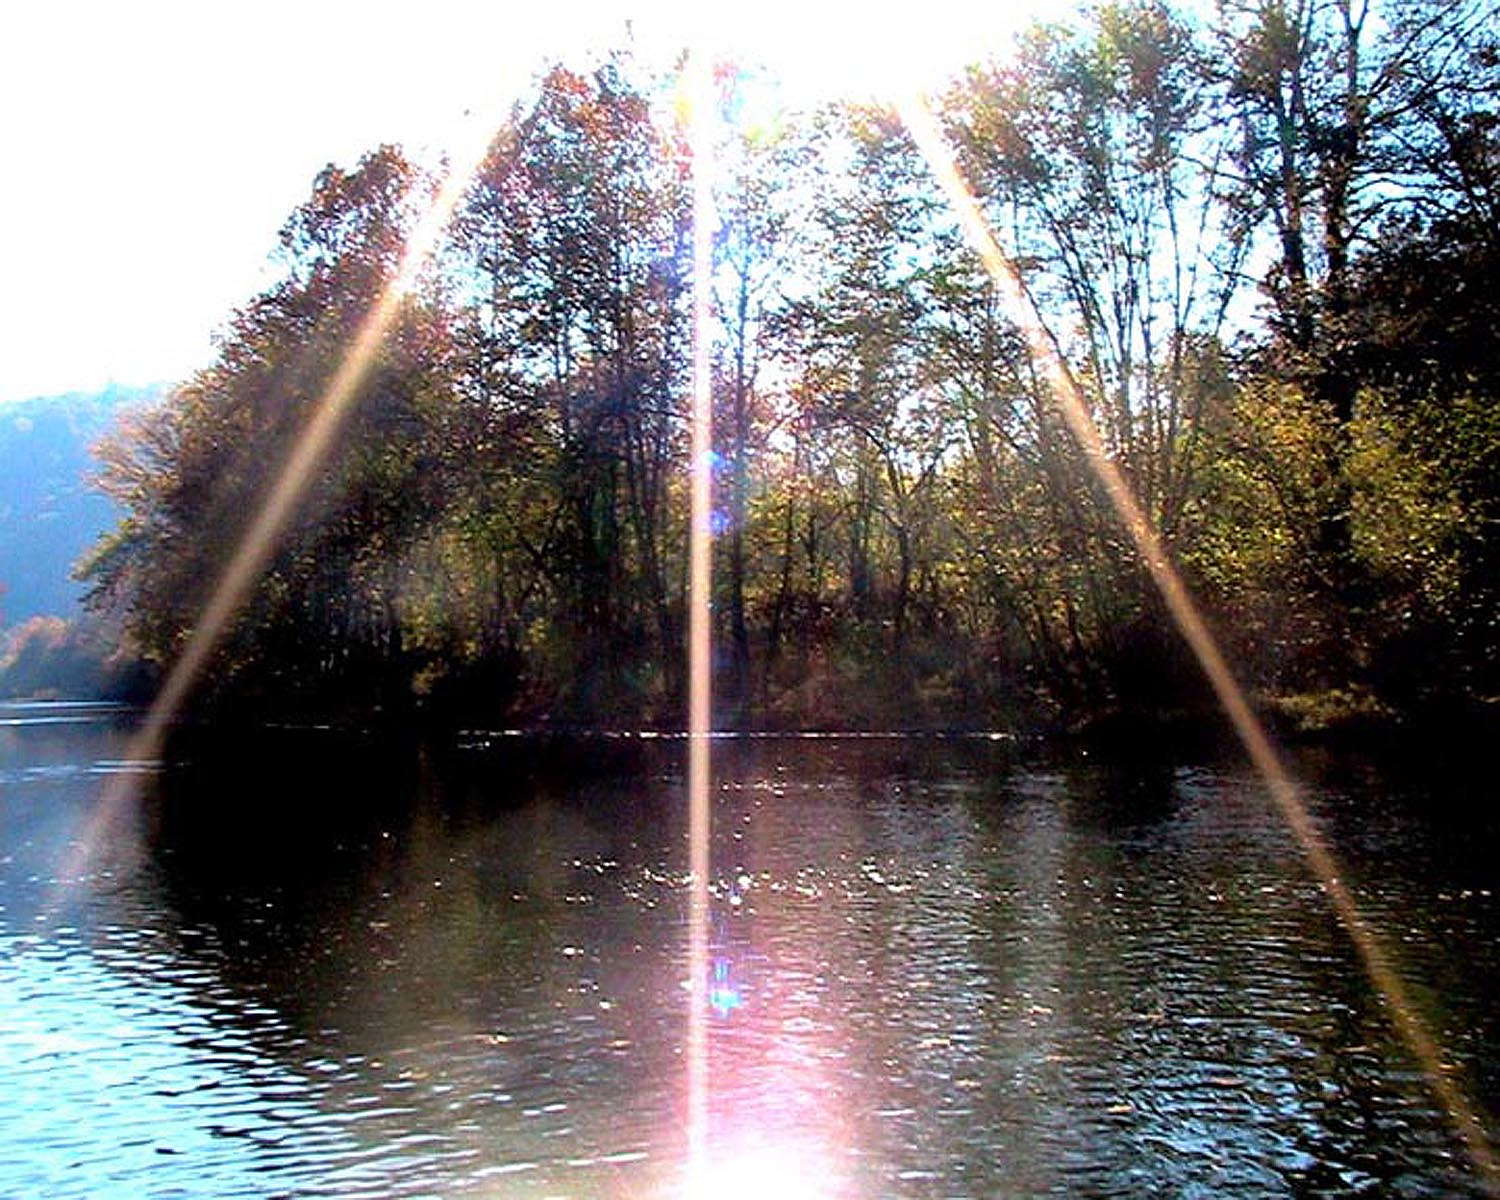 Bosch09 - Sunburst Over River